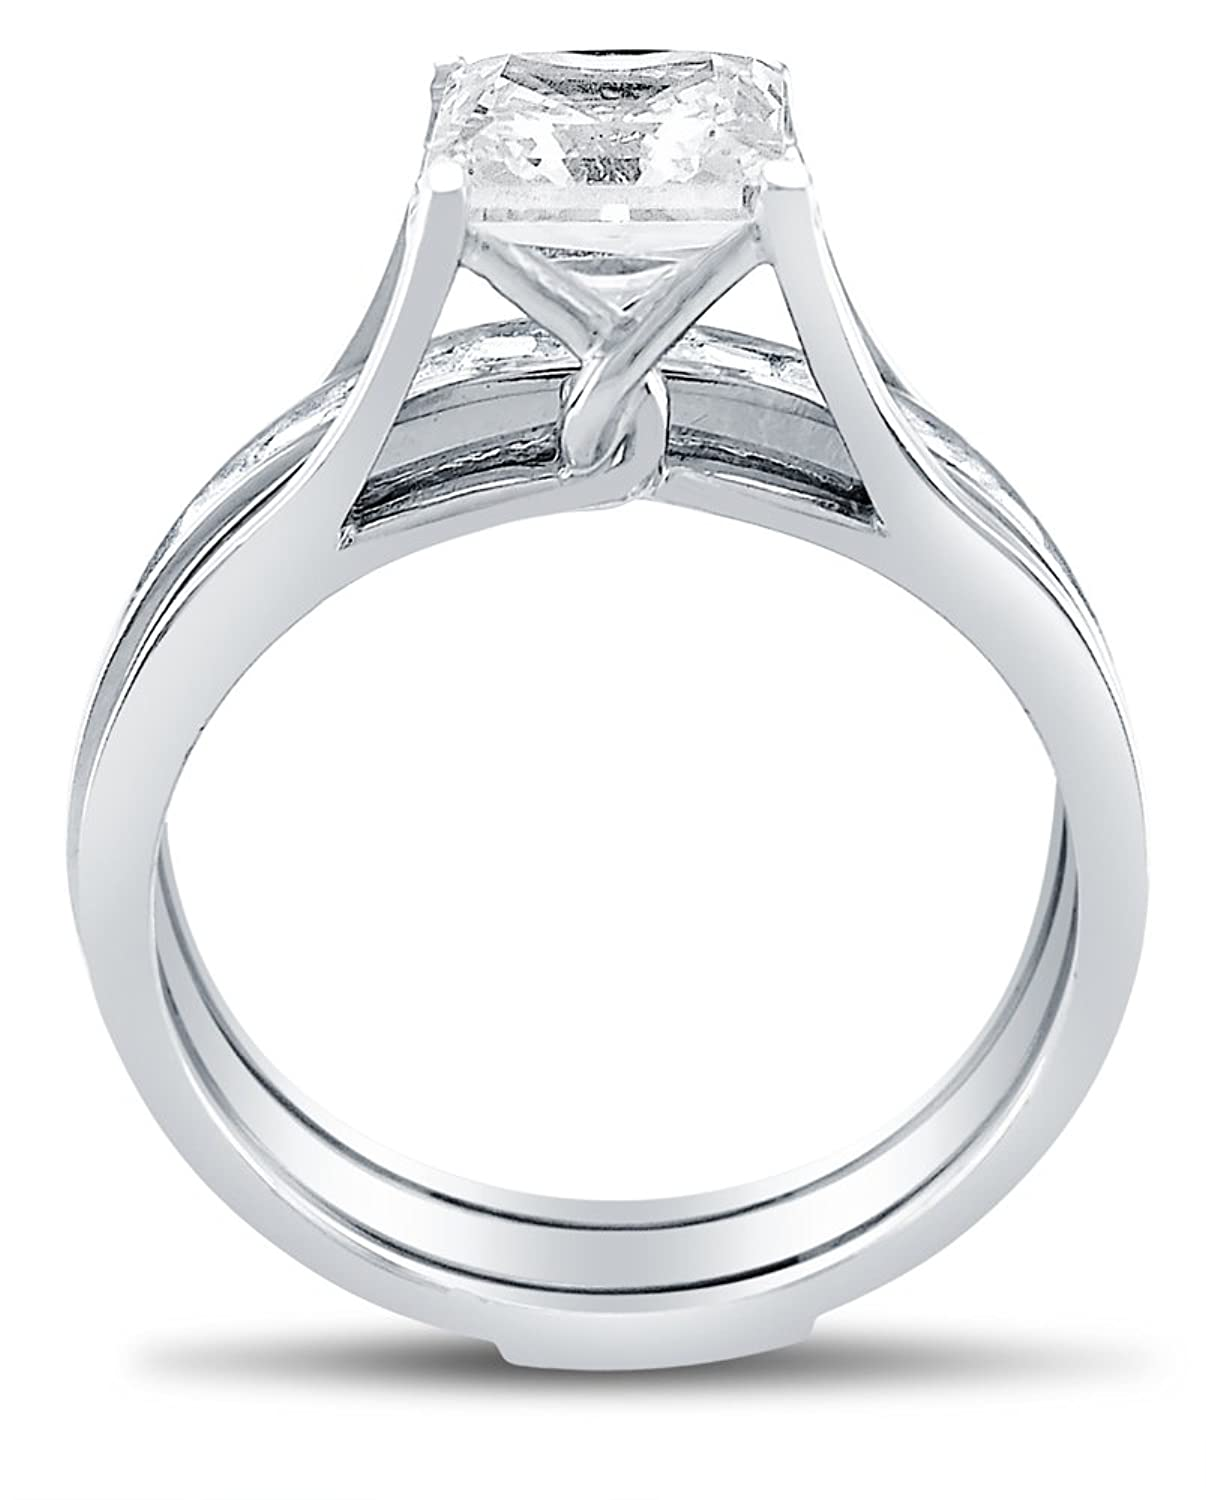 Amazoncom Solid 14k White Gold Bridal Set Princess Cut Solitaire